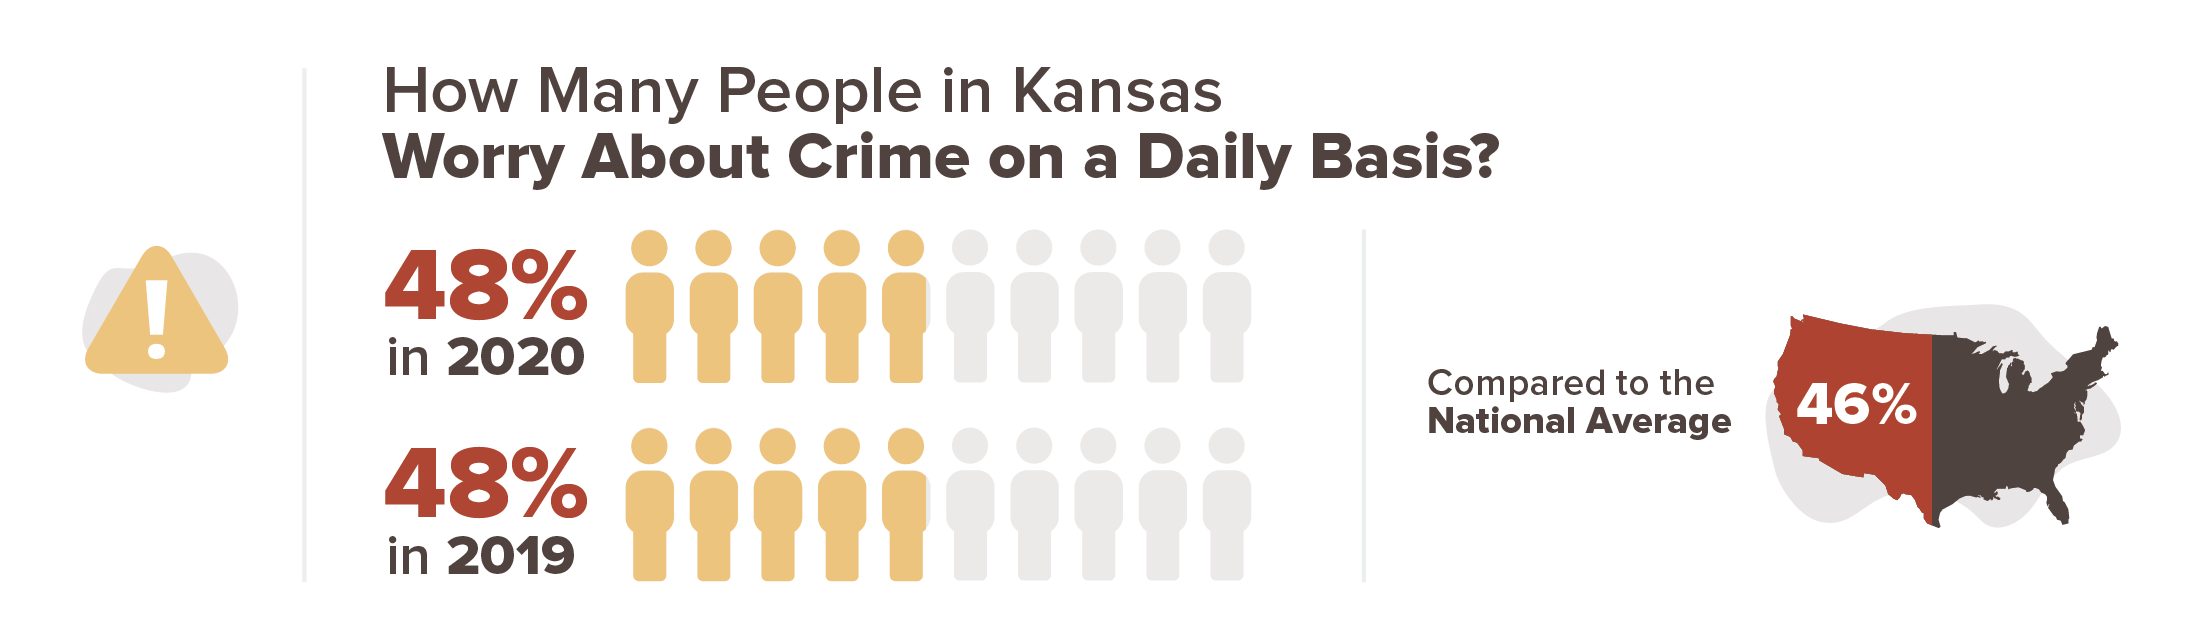 48% of people in Kansas were worried about crime on a daily basis compared to 48% in 2019.